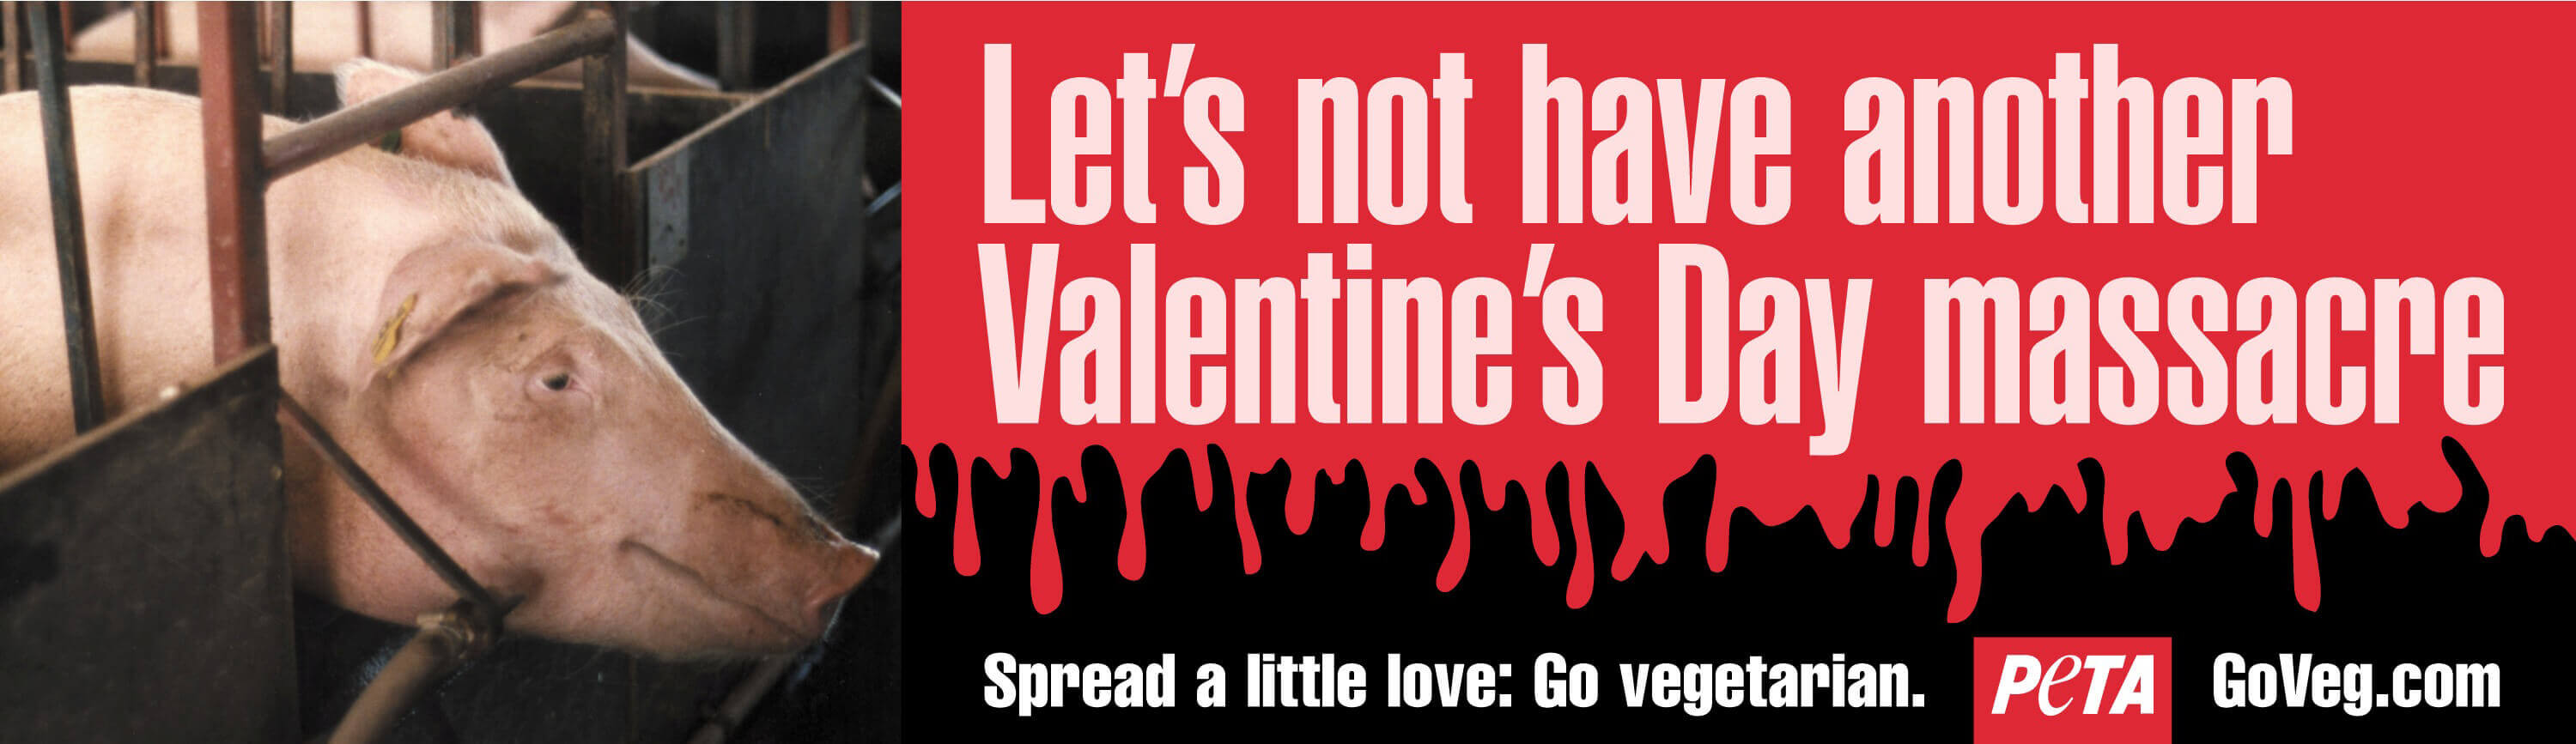 Let's Not Have Another Valentine's Day Massacre